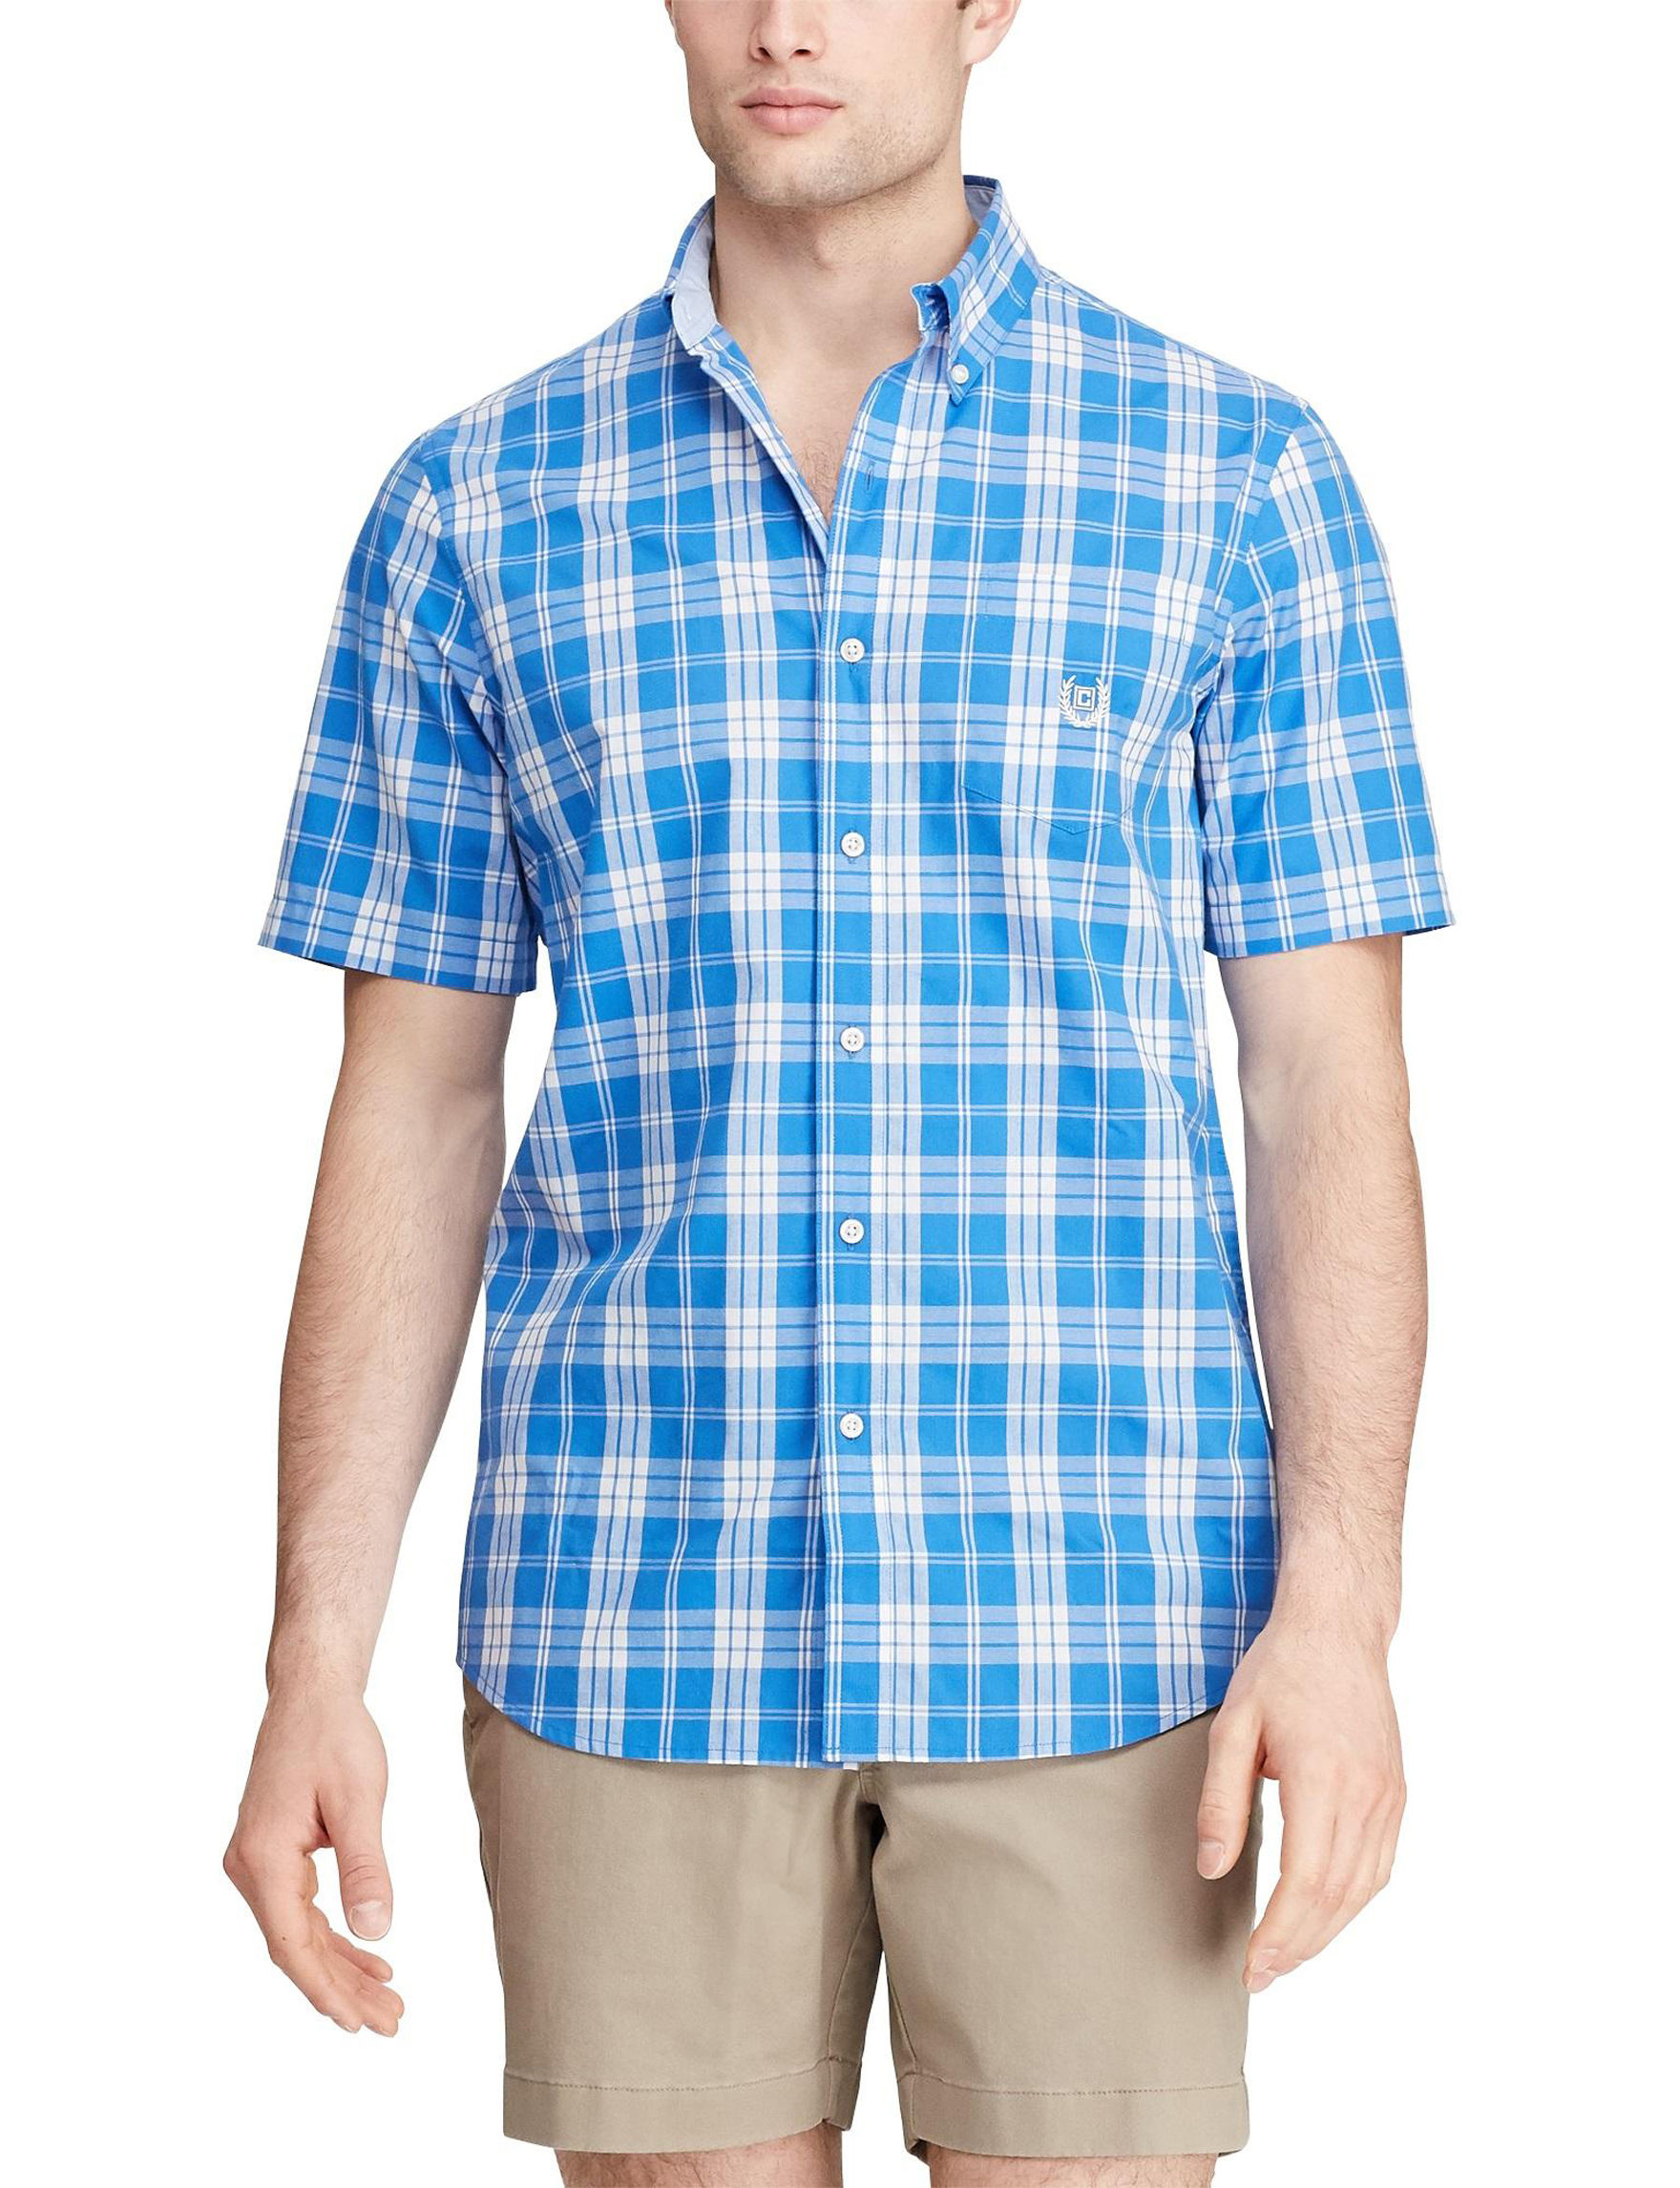 Chaps Colby Blue Casual Button Down Shirts